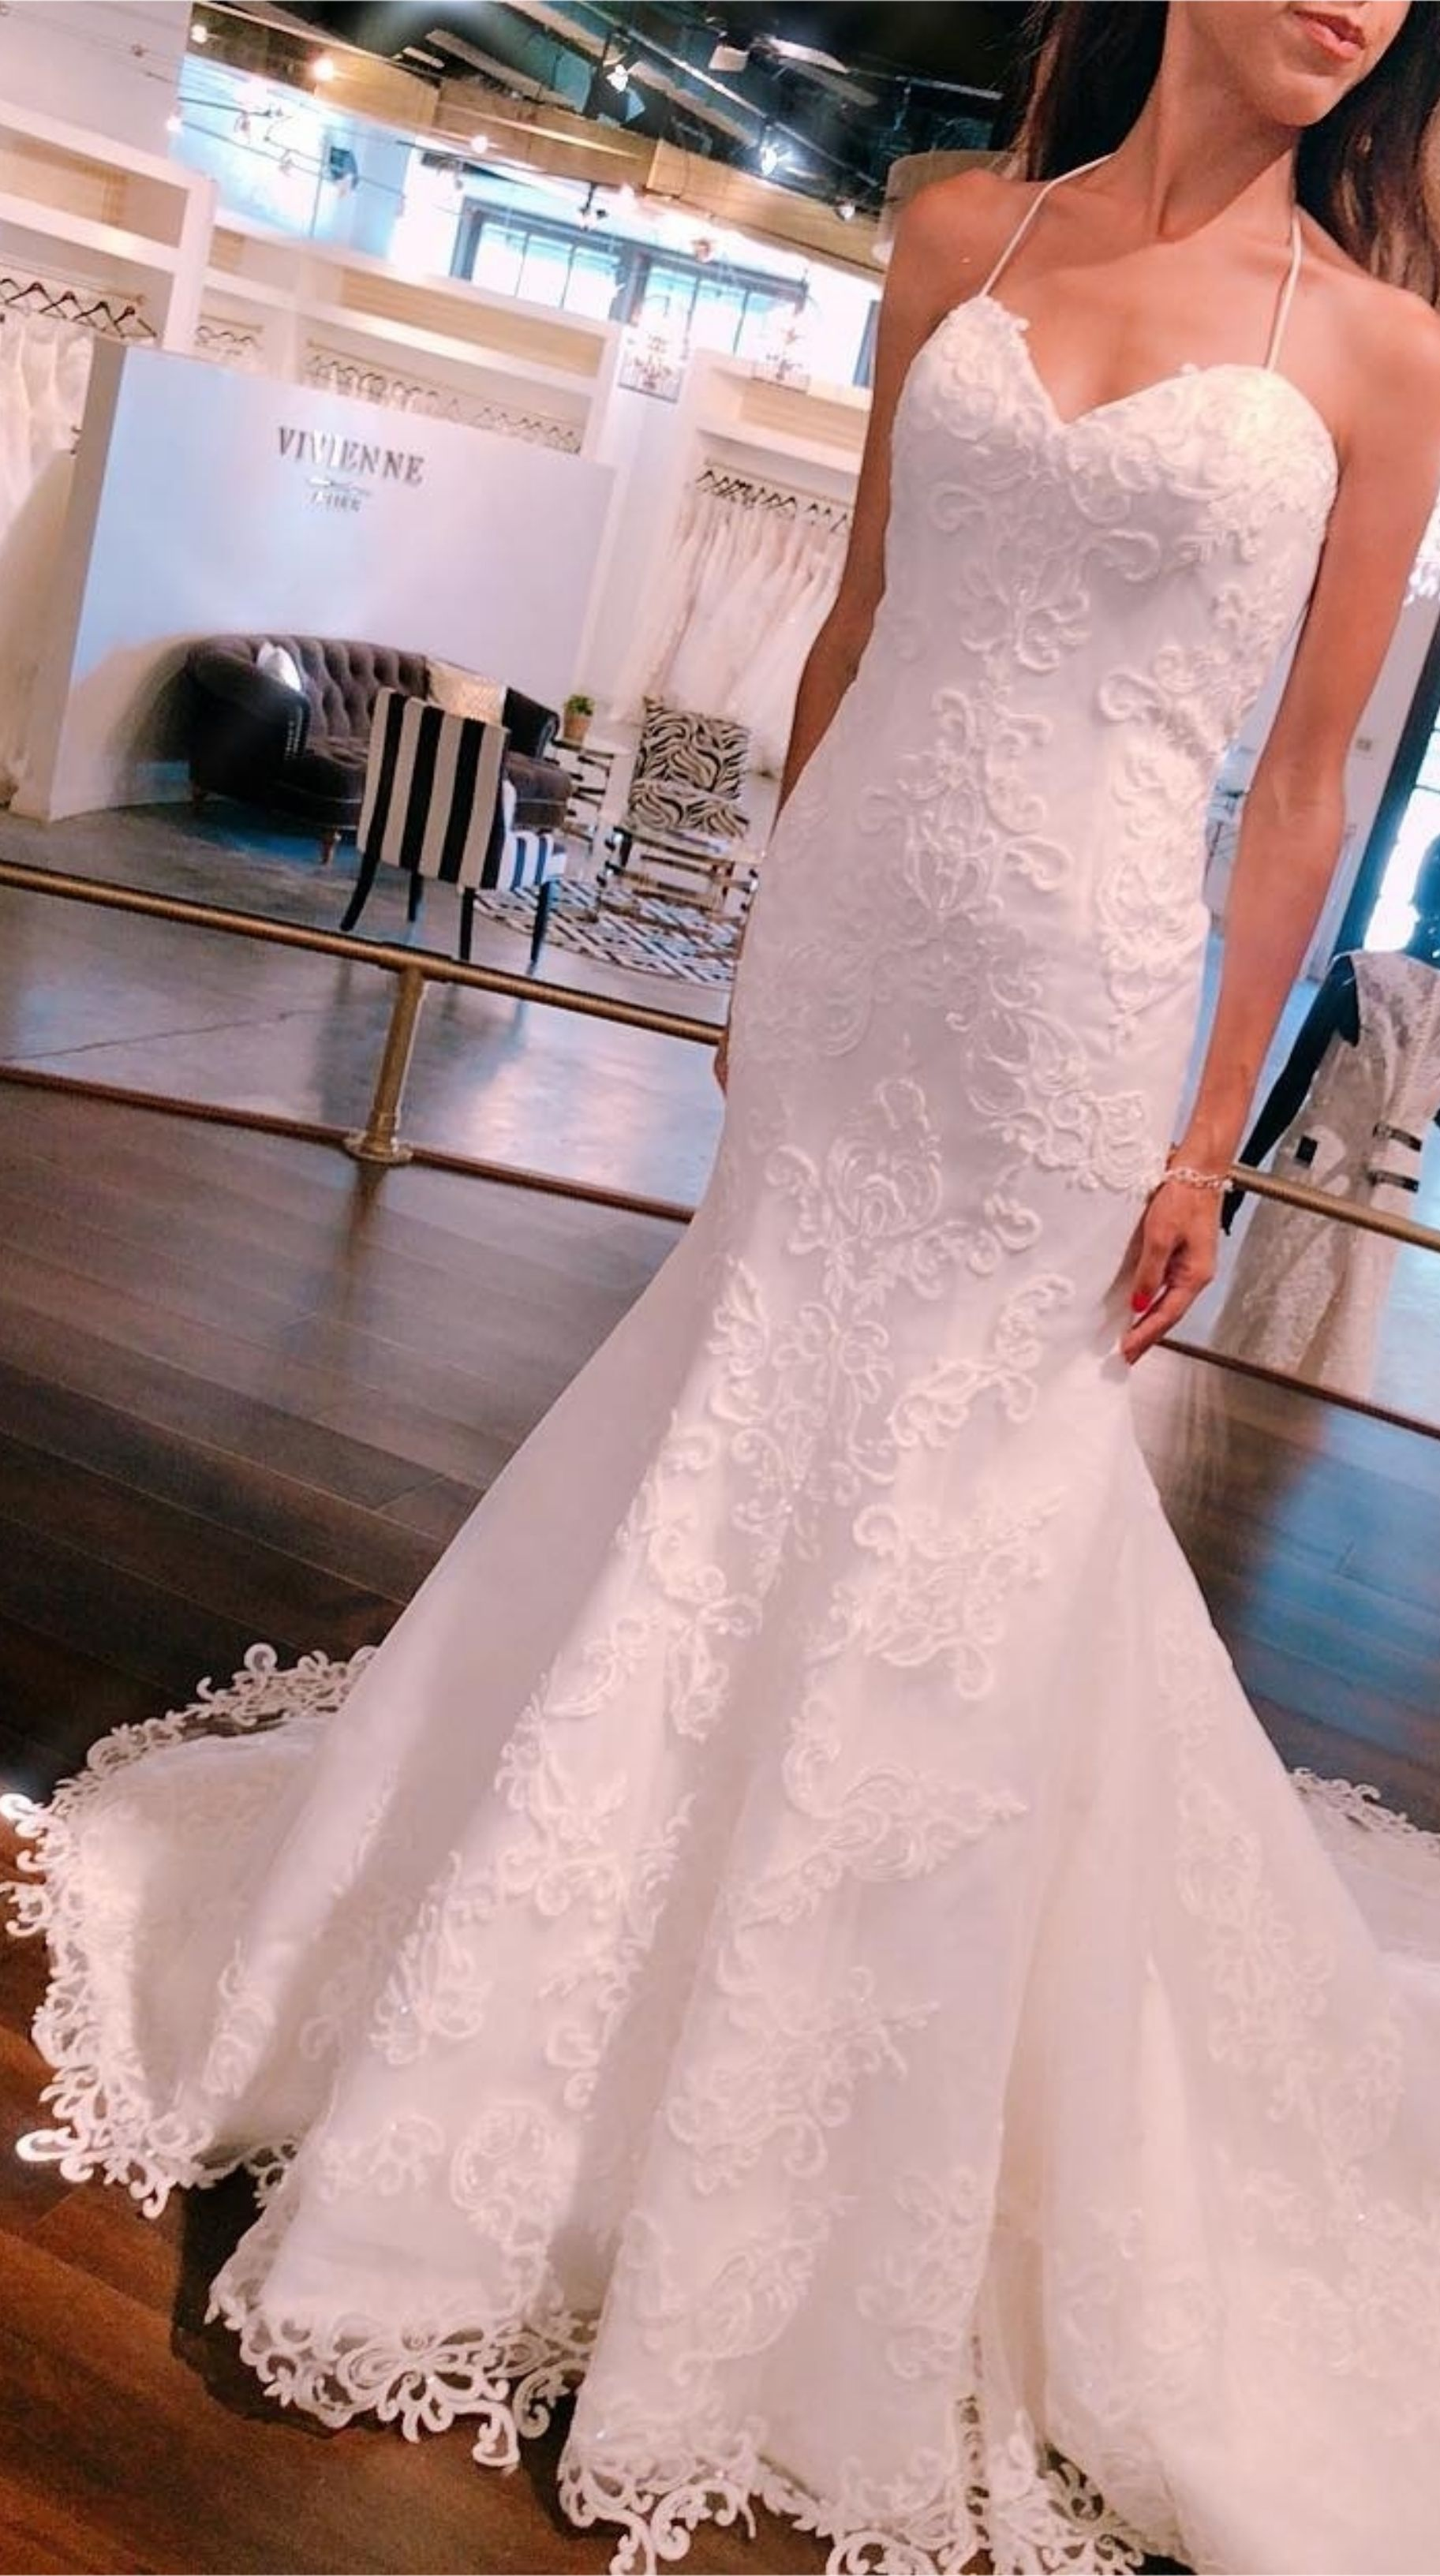 Fitting On This 2019 New Collection Dress Weddingdress